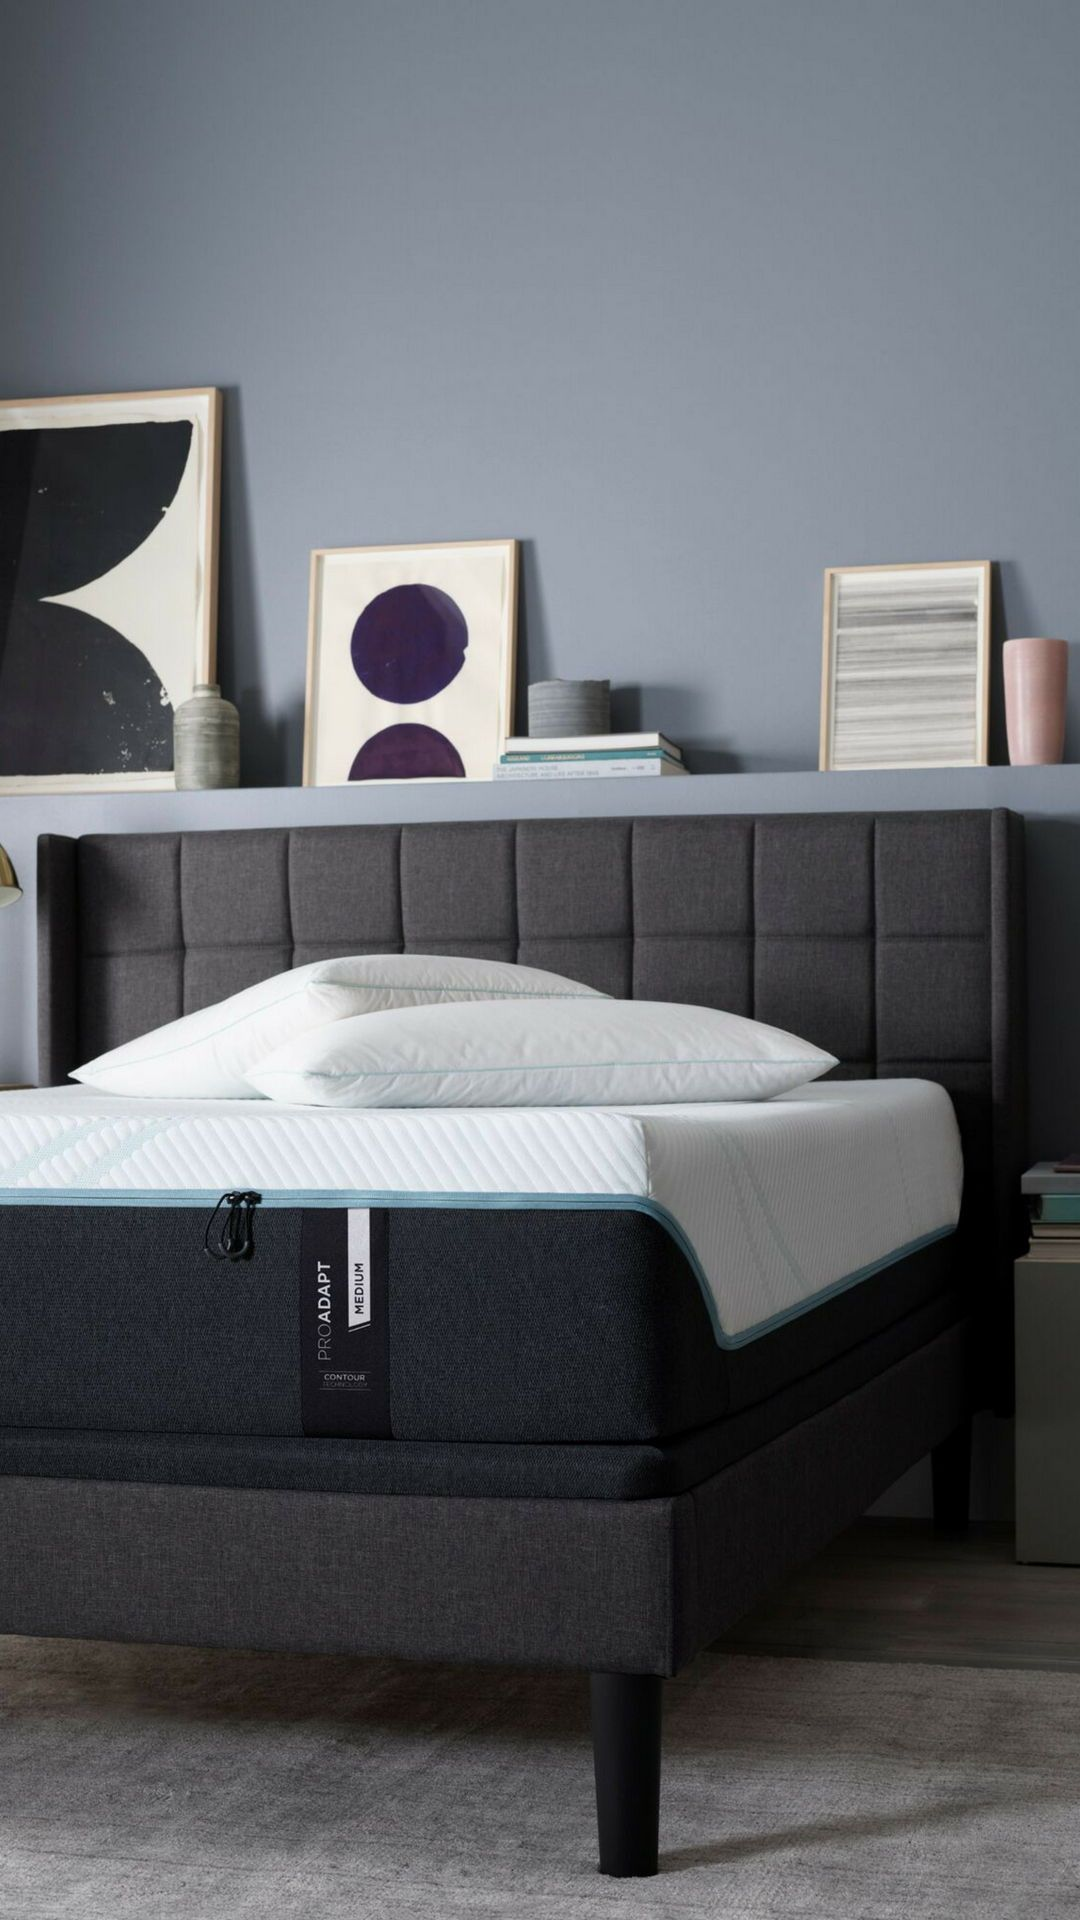 Join Us At Gallery Furniture Today To Speak With Our Gf Sleep Experts About Getting Your Best Sleep Ever On A Brand N Tempurpedic Mattress Tempurpedic Mattress